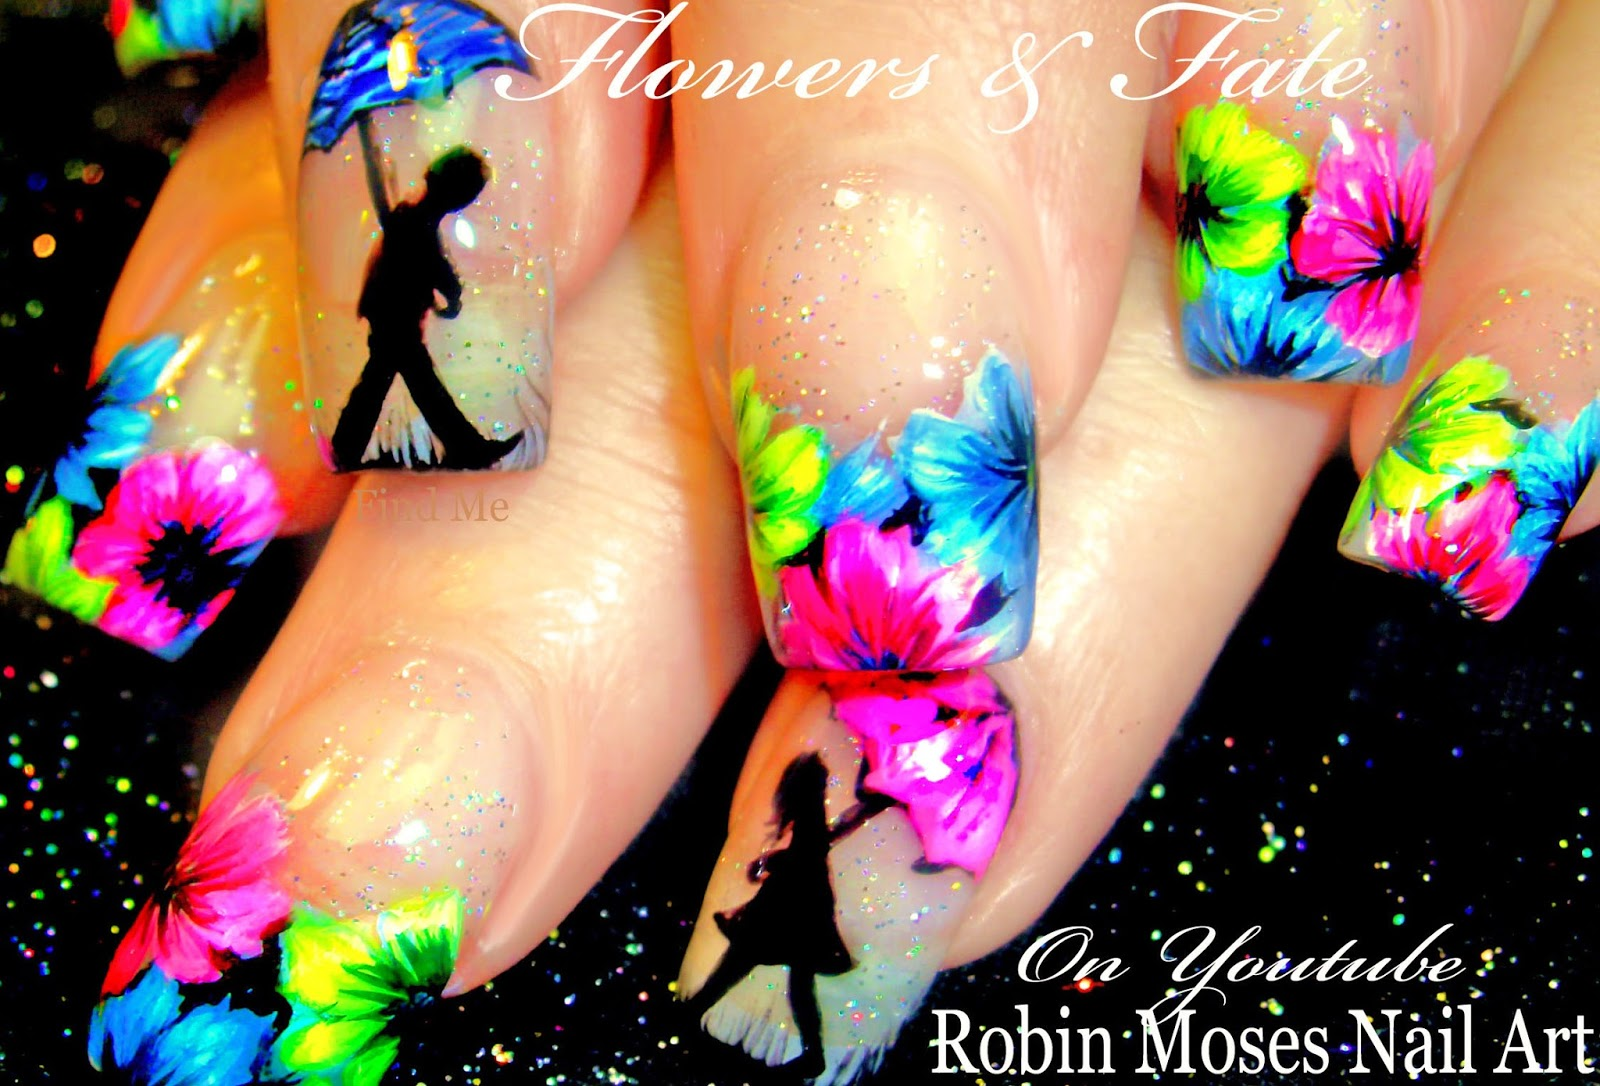 Robin moses nail art neon flower nails with romantic umbrellas neon flower nails with romantic umbrellas easter nail art easter nails cute easter nails easy easter nails easter flower nails april showers nail prinsesfo Image collections